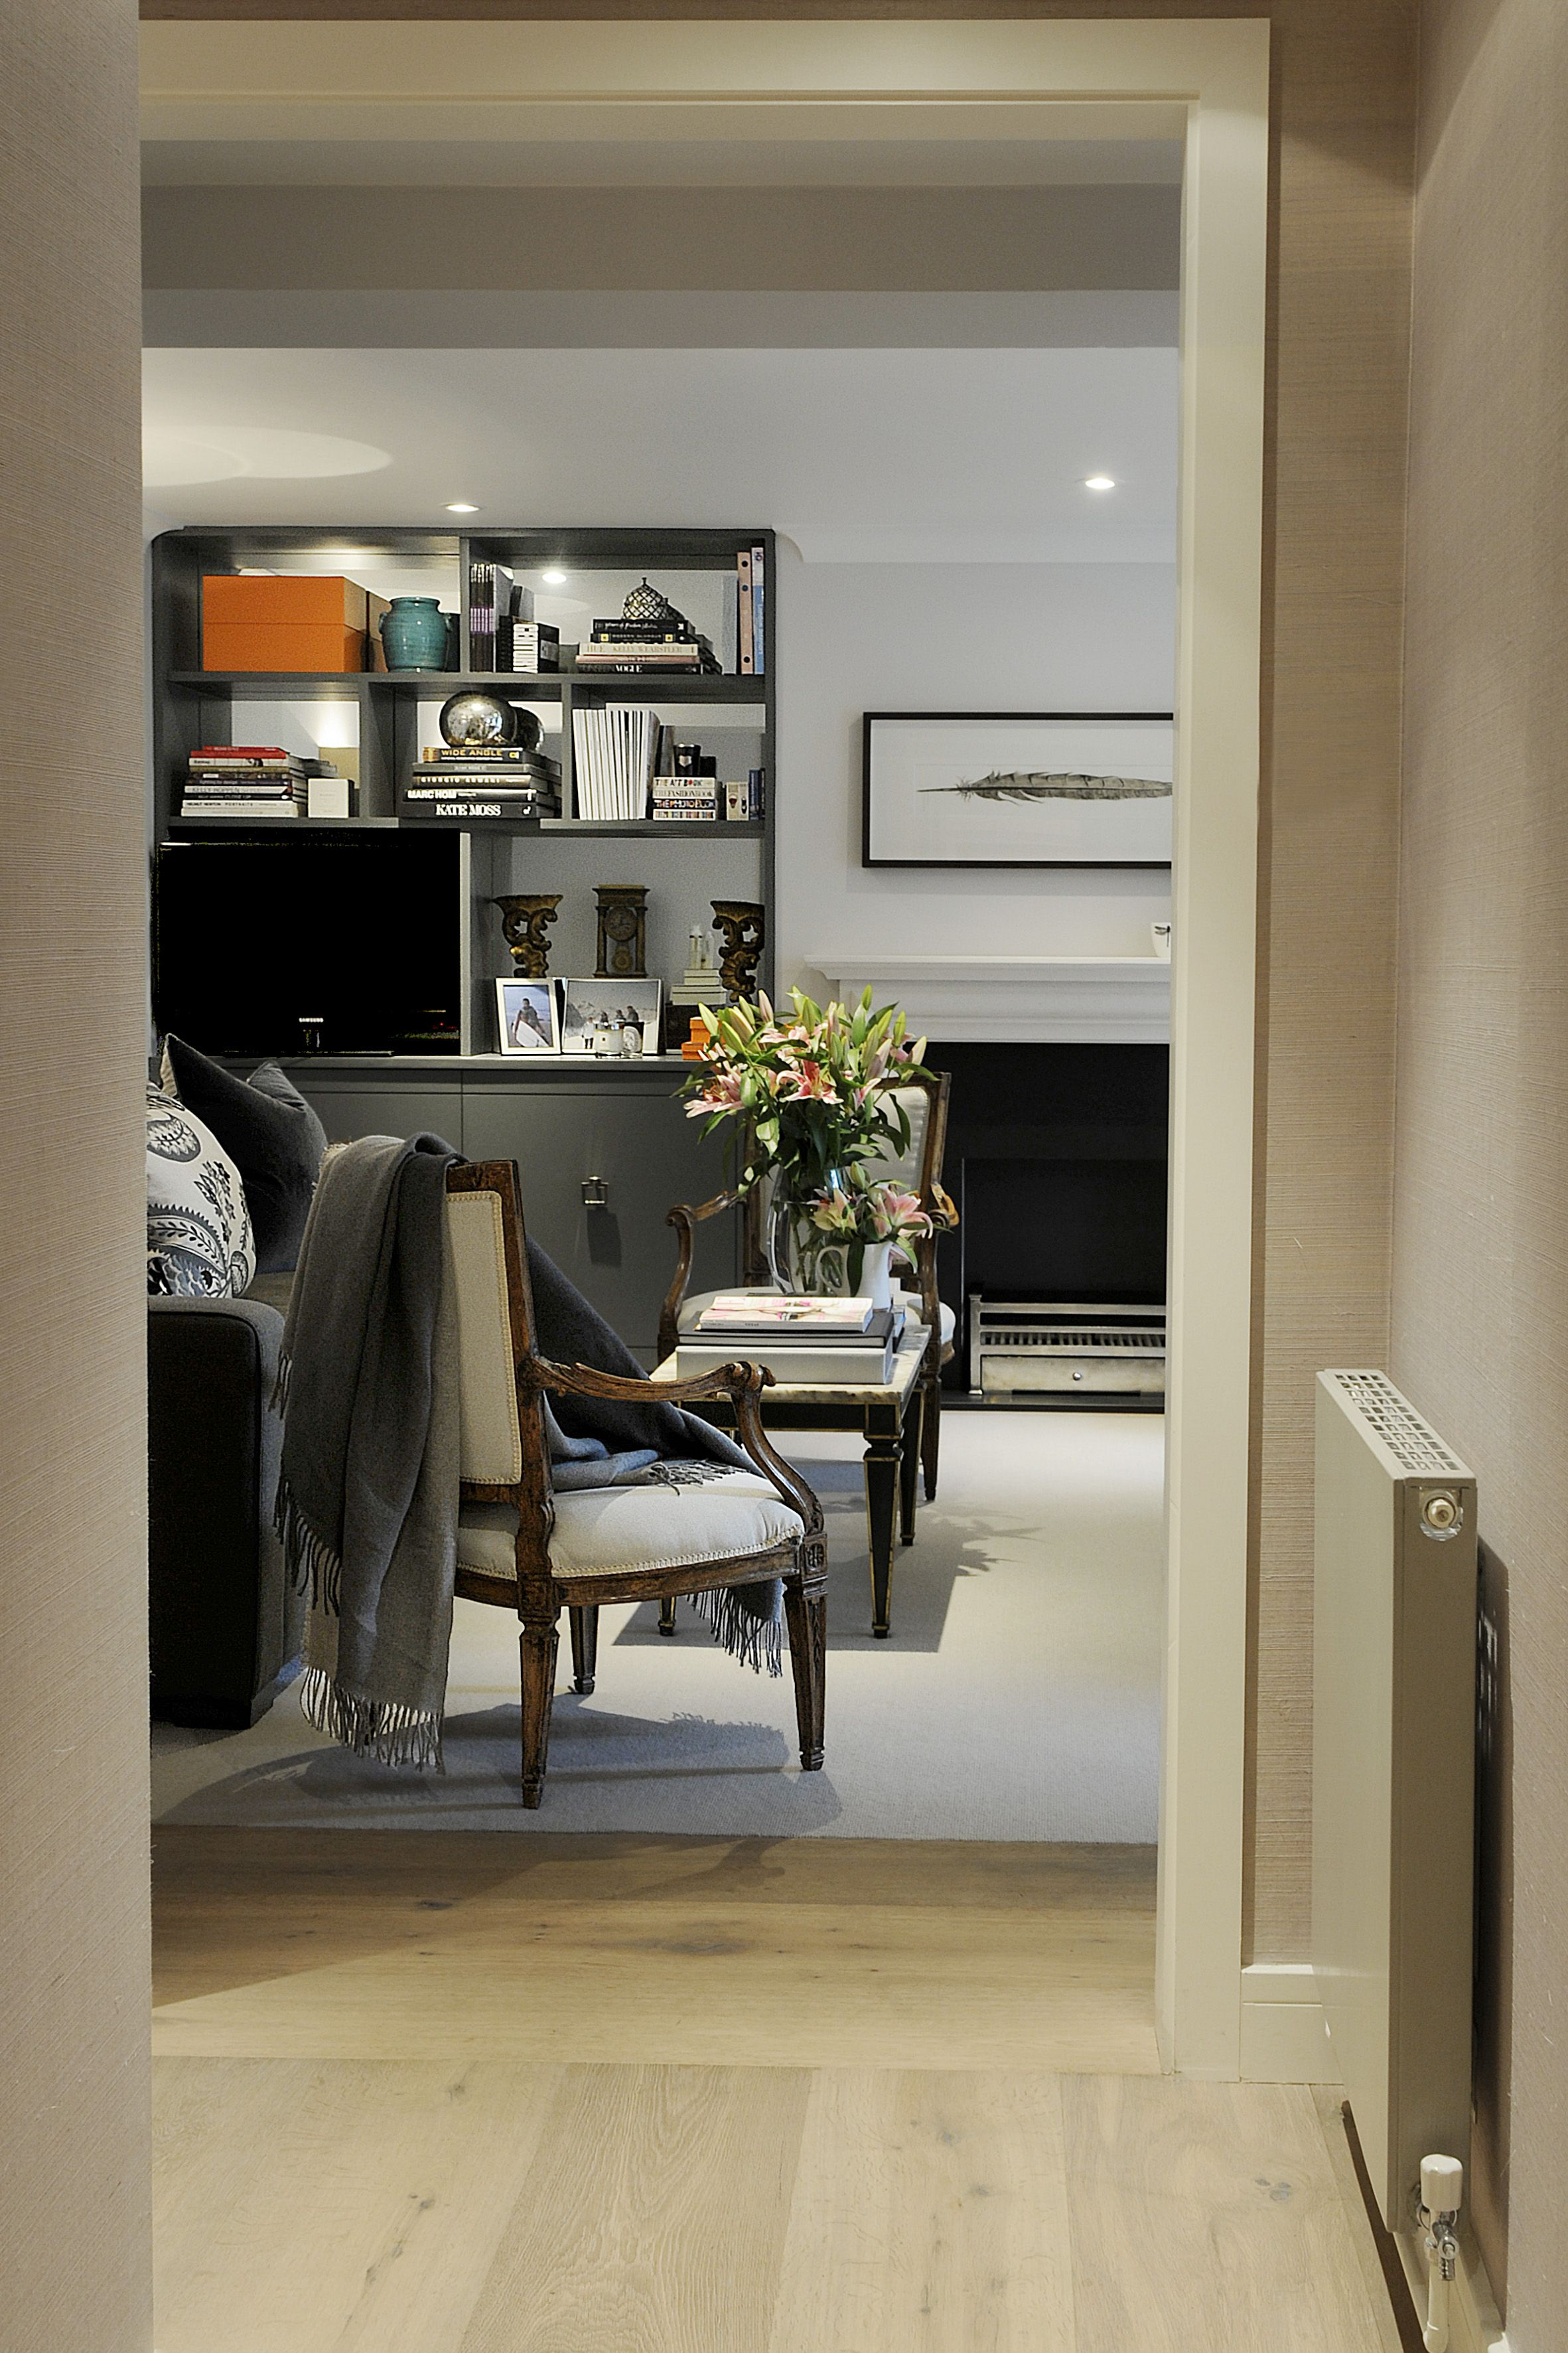 furniture for entrance hall. Entrance Hall Leading Into Reception Room. Fireplace And Joinery, Furniture For